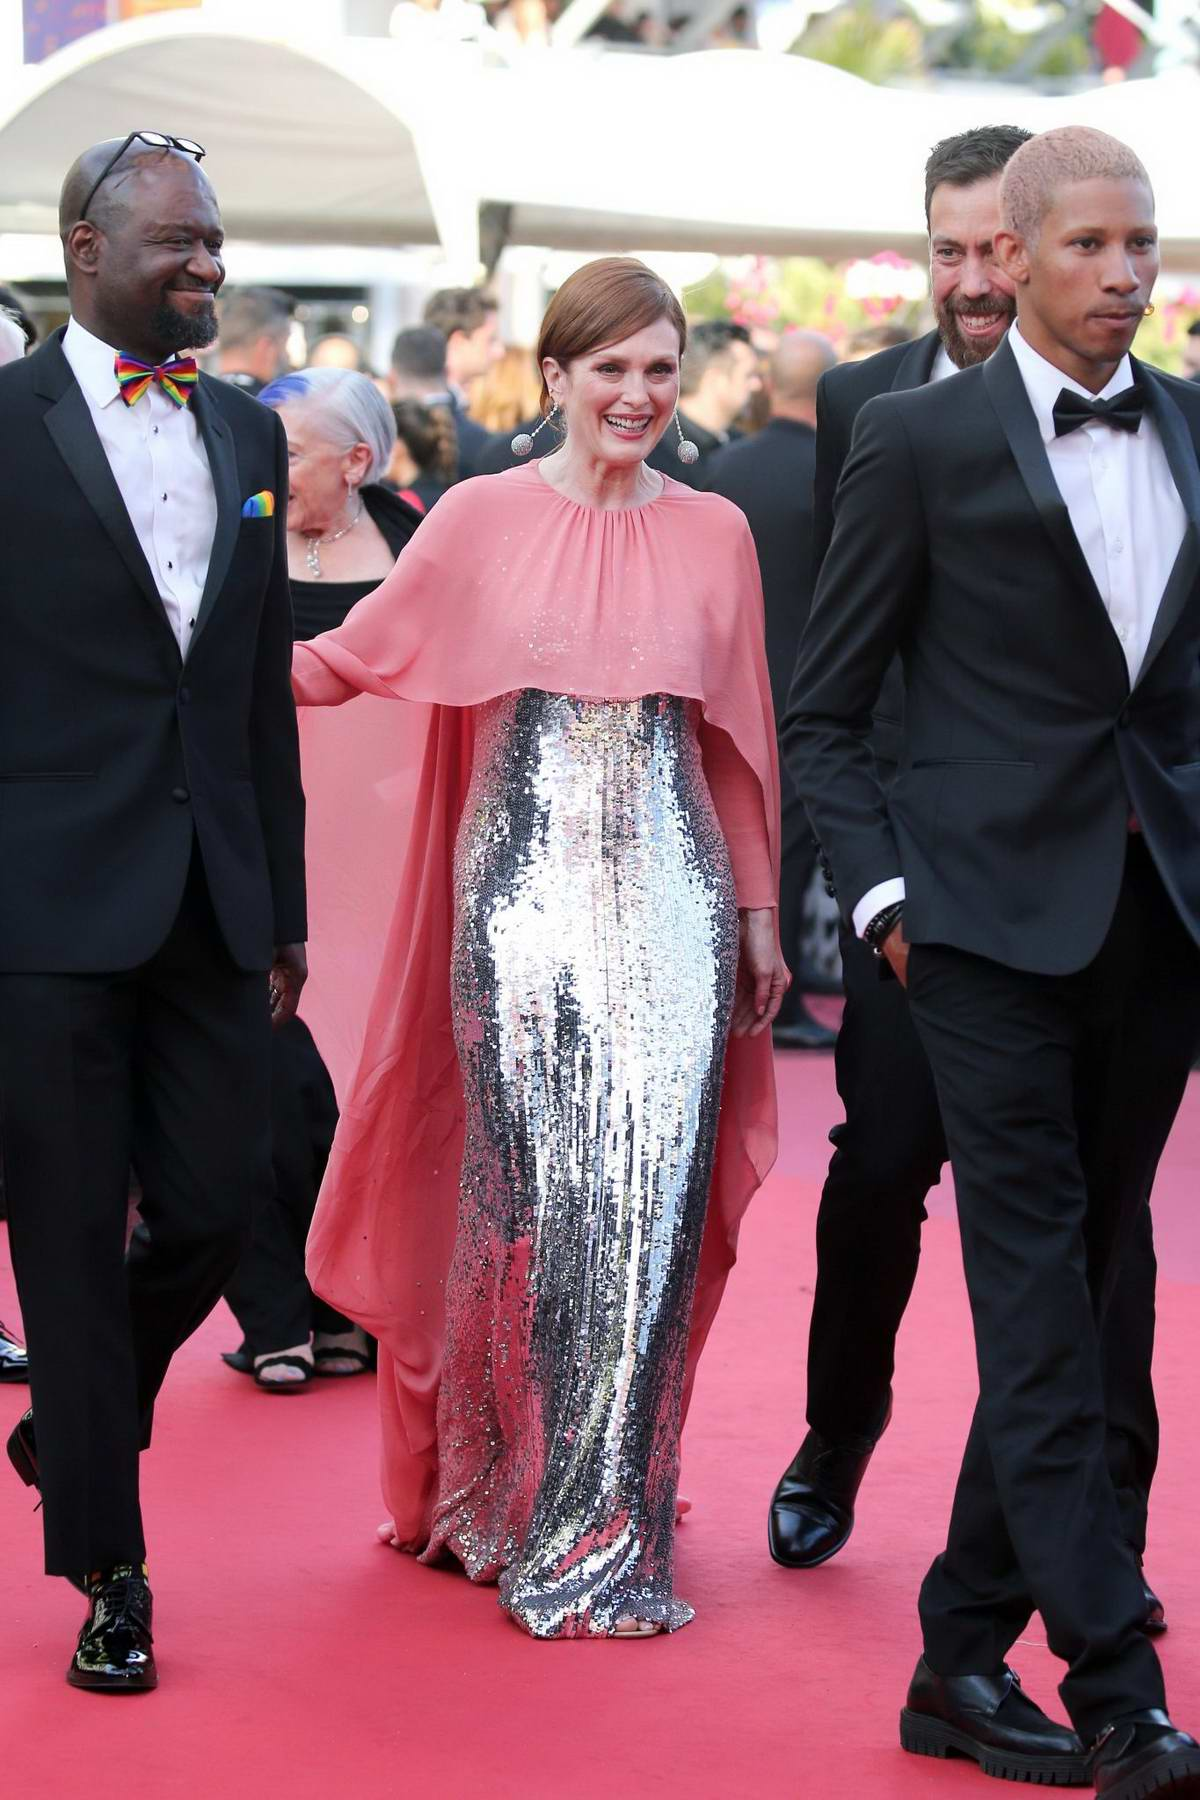 Julianne Moore attends the screening of 'Rocketman' during the 72nd annual Cannes Film Festival in Cannes, France